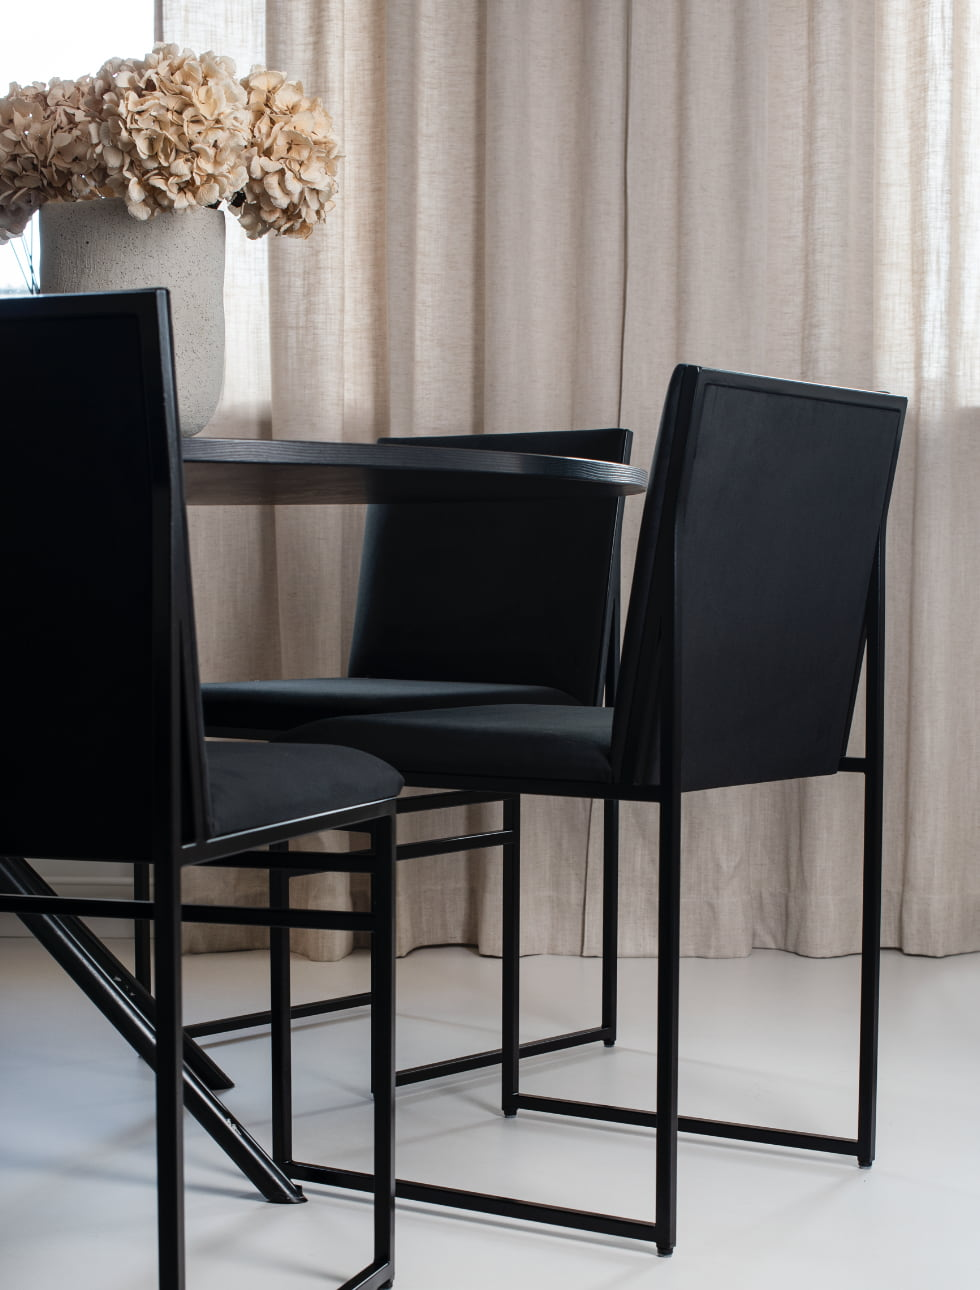 Isabell dining chair by Crea® - matstol by Crea